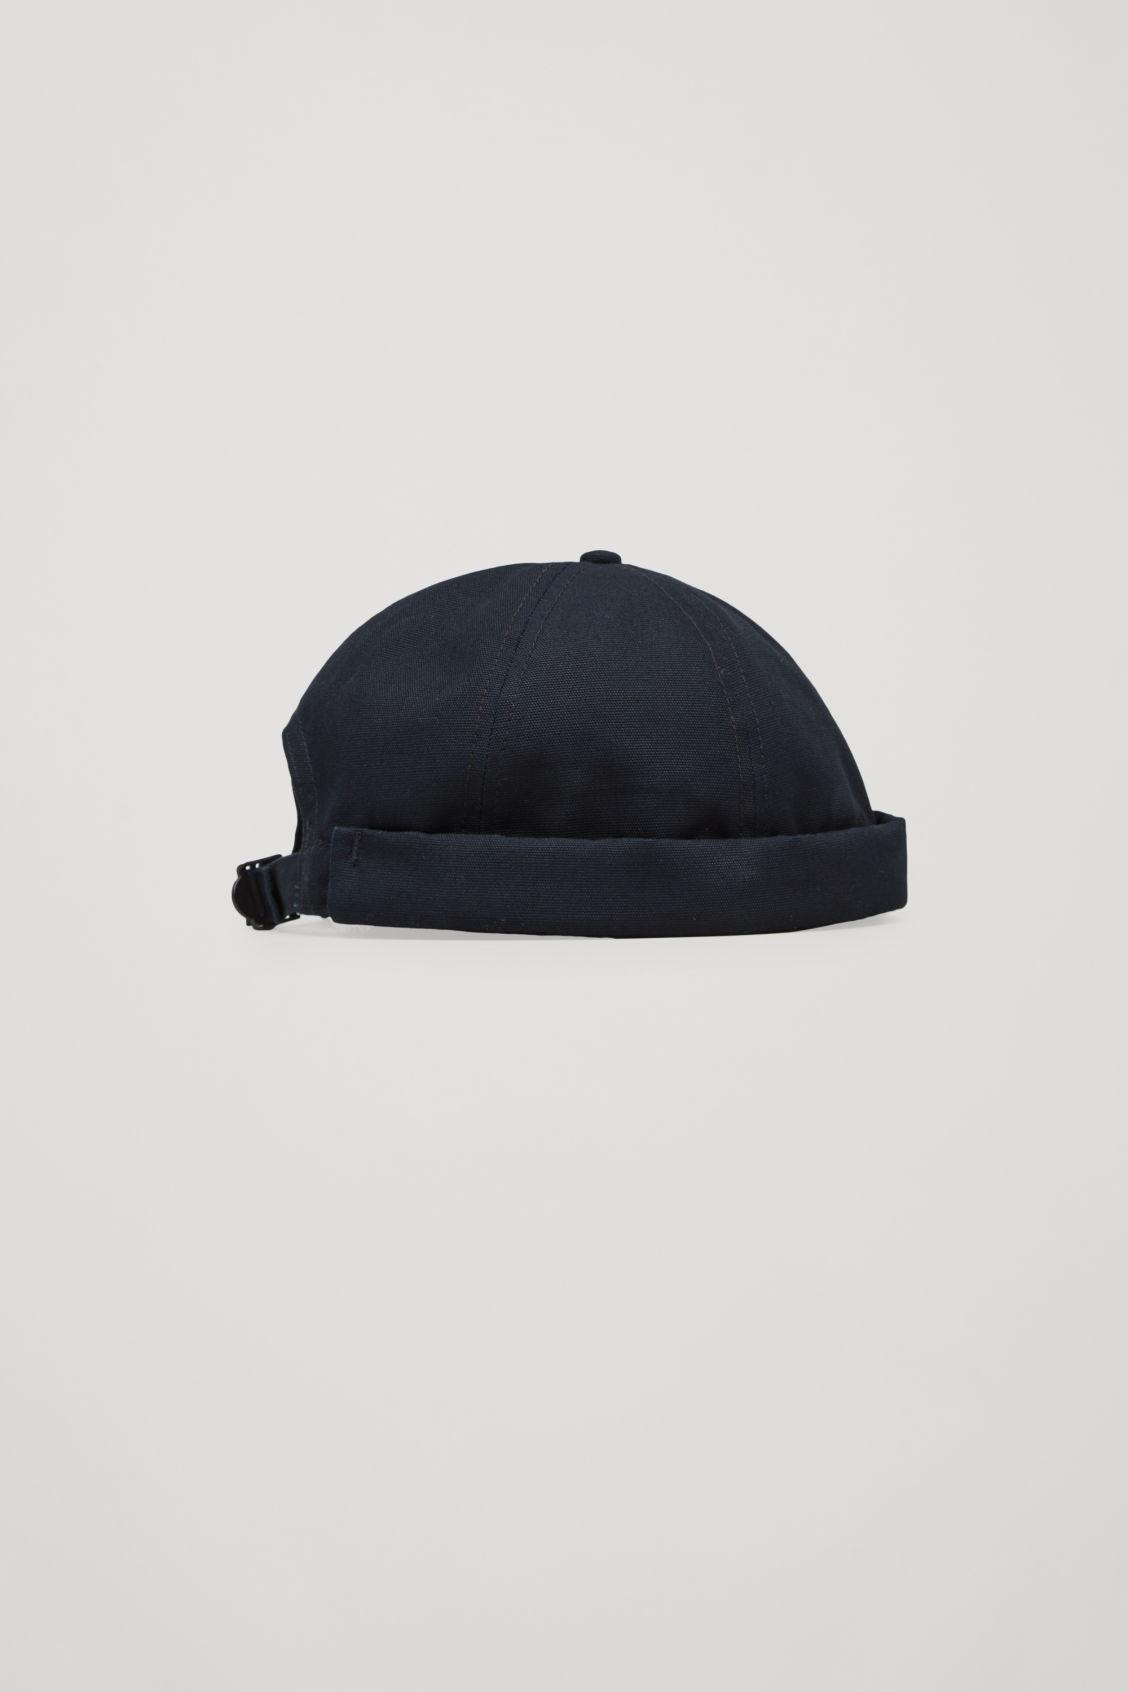 Lyst - COS Cotton Skull Cap in Black for Men 3ddc83b2a73c